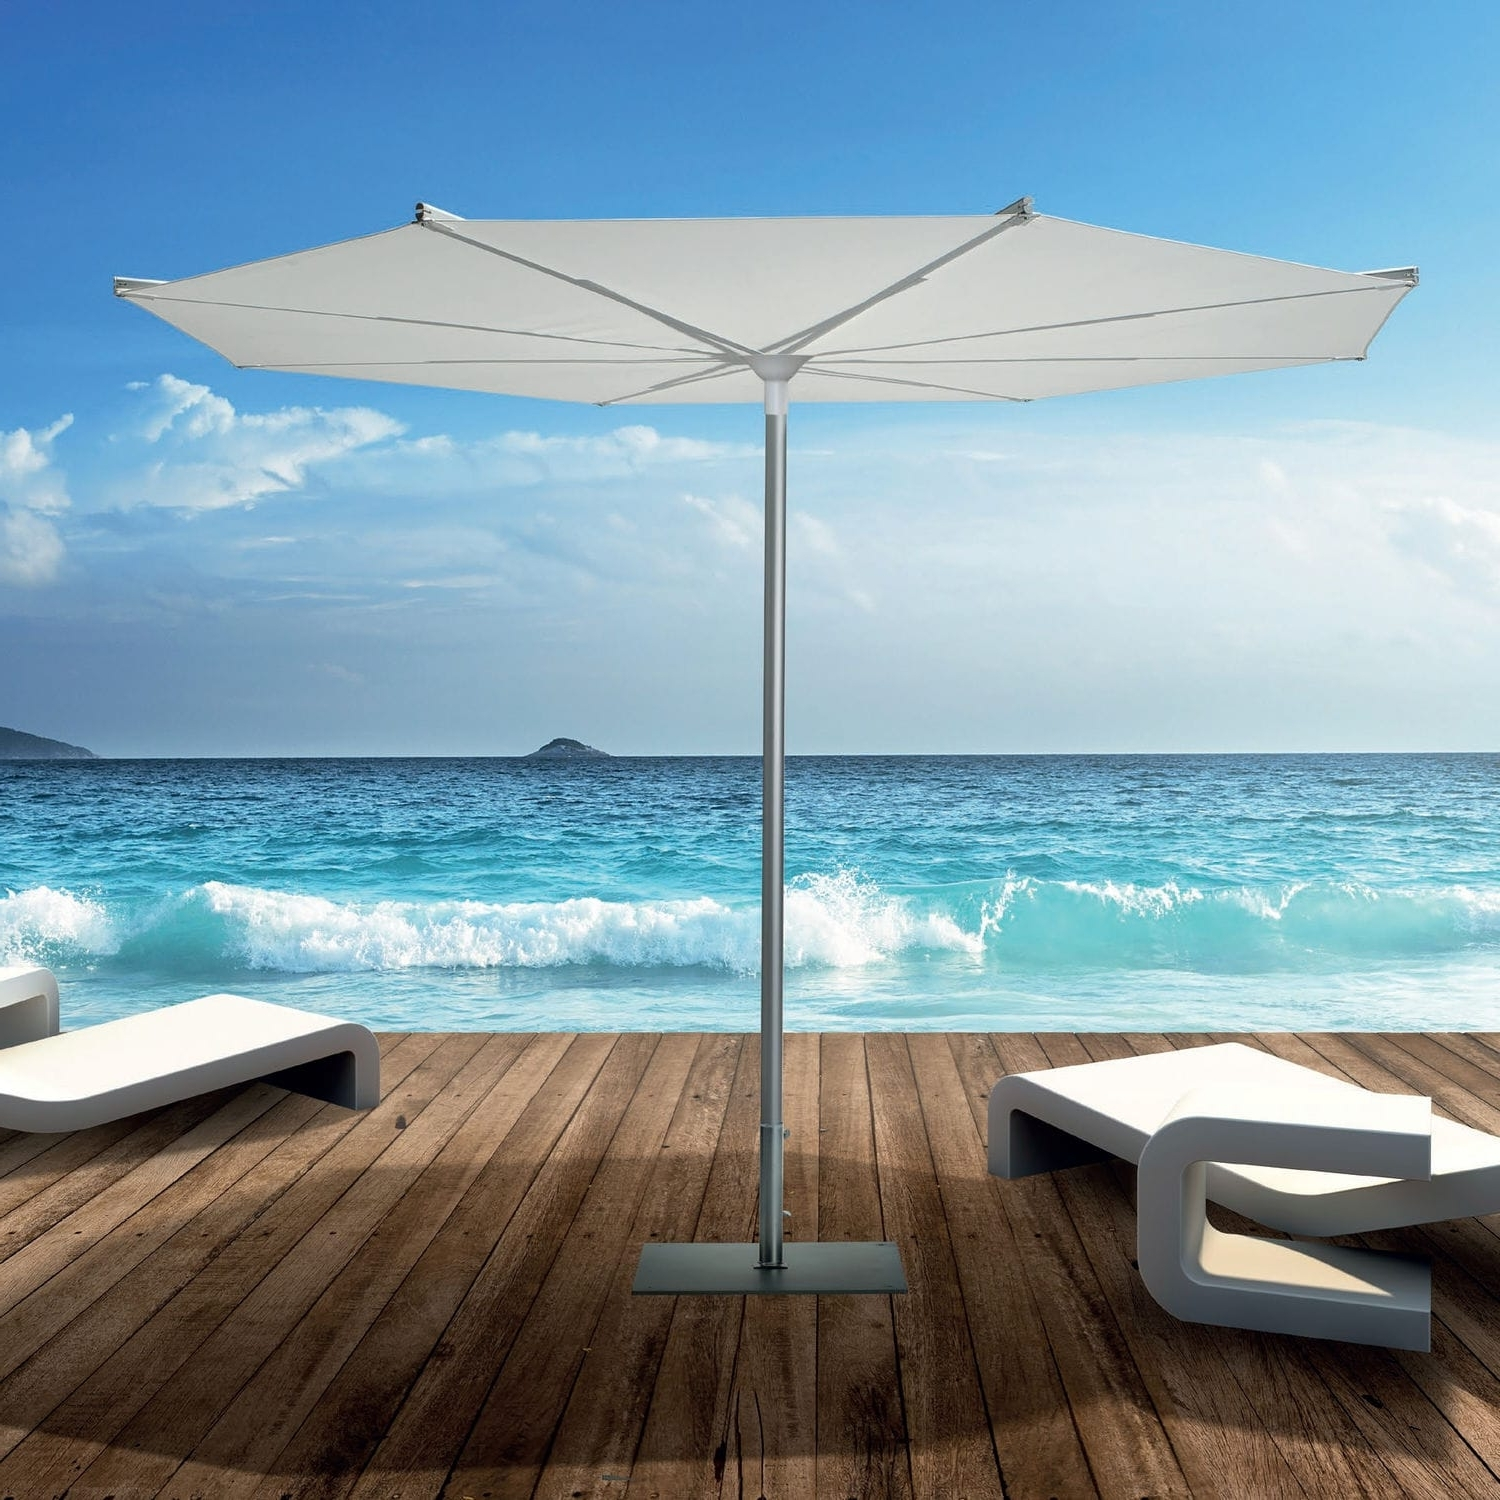 Patio Umbrellas For Windy Locations In Most Recent Commercial Patio Umbrella / For Hotels / Aluminum / Wind Resistant (View 20 of 20)